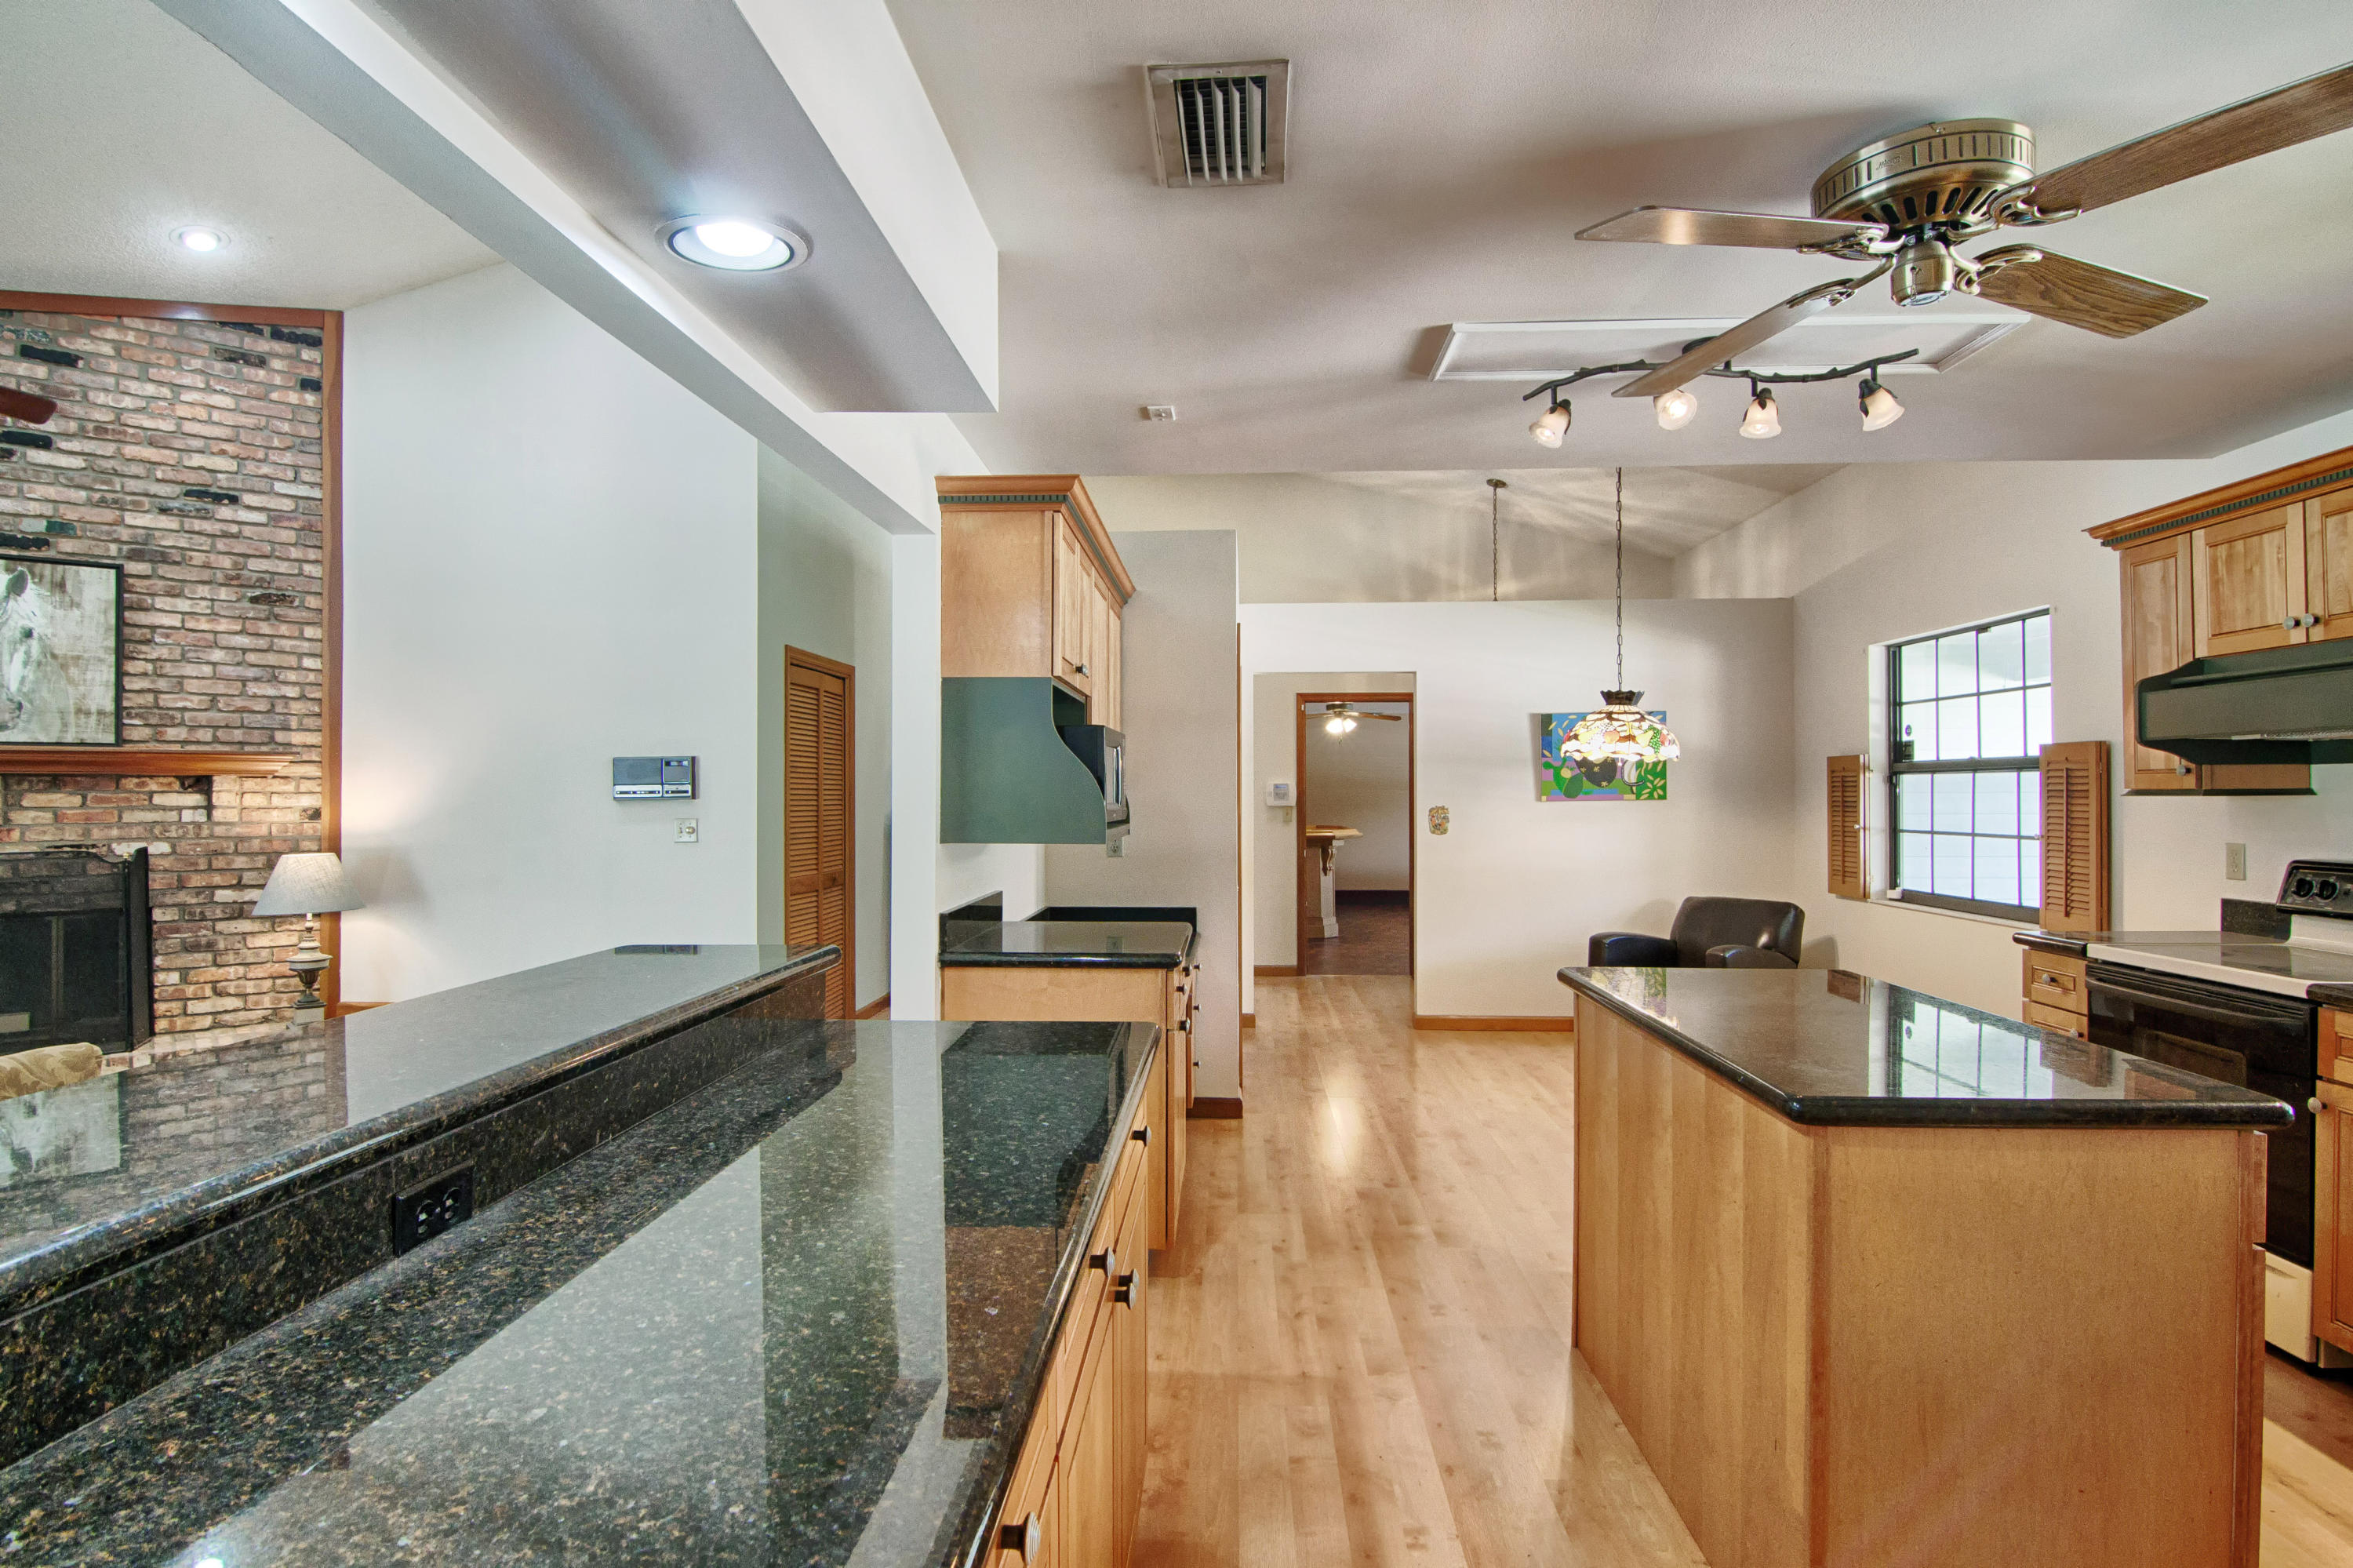 Convenient and oversized kitchen